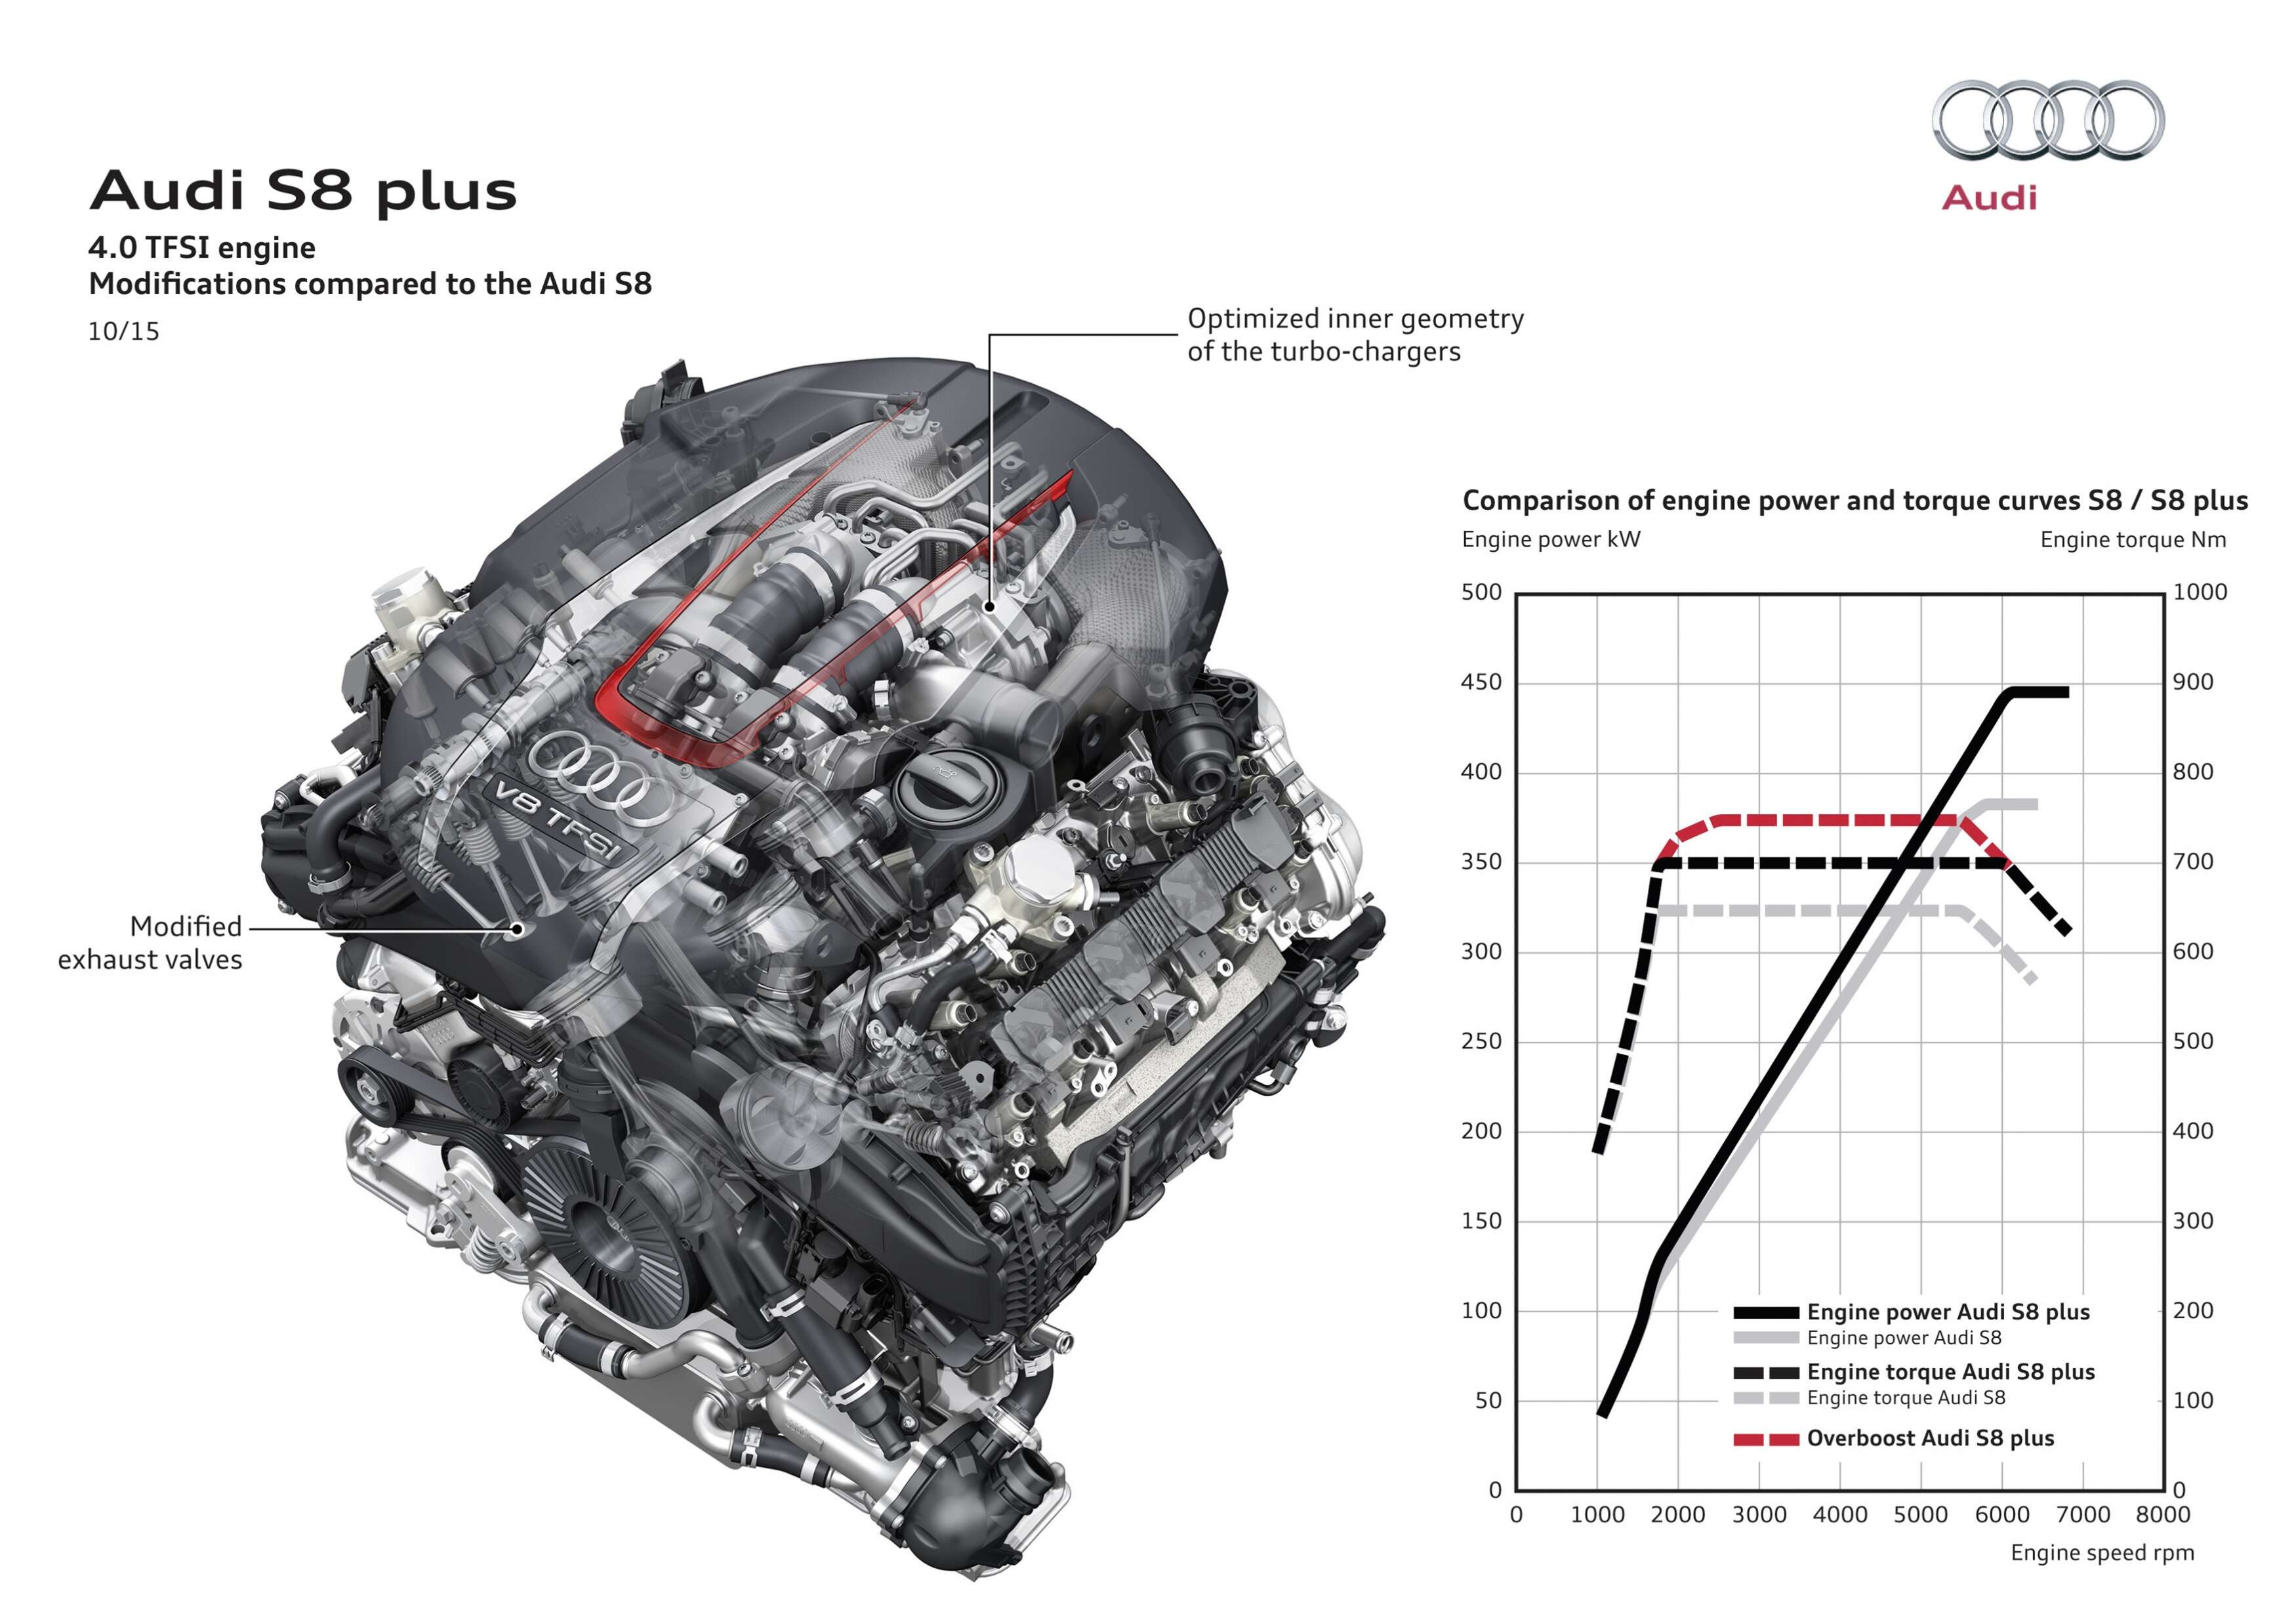 TF_9581] Audi V8 Engine Diagram View Diagram Audi A8 Engine Parts And  Download DiagramPhon Epete Chor Nerve Scata Alypt Joami Exmet Mohammedshrine Librar Wiring  101